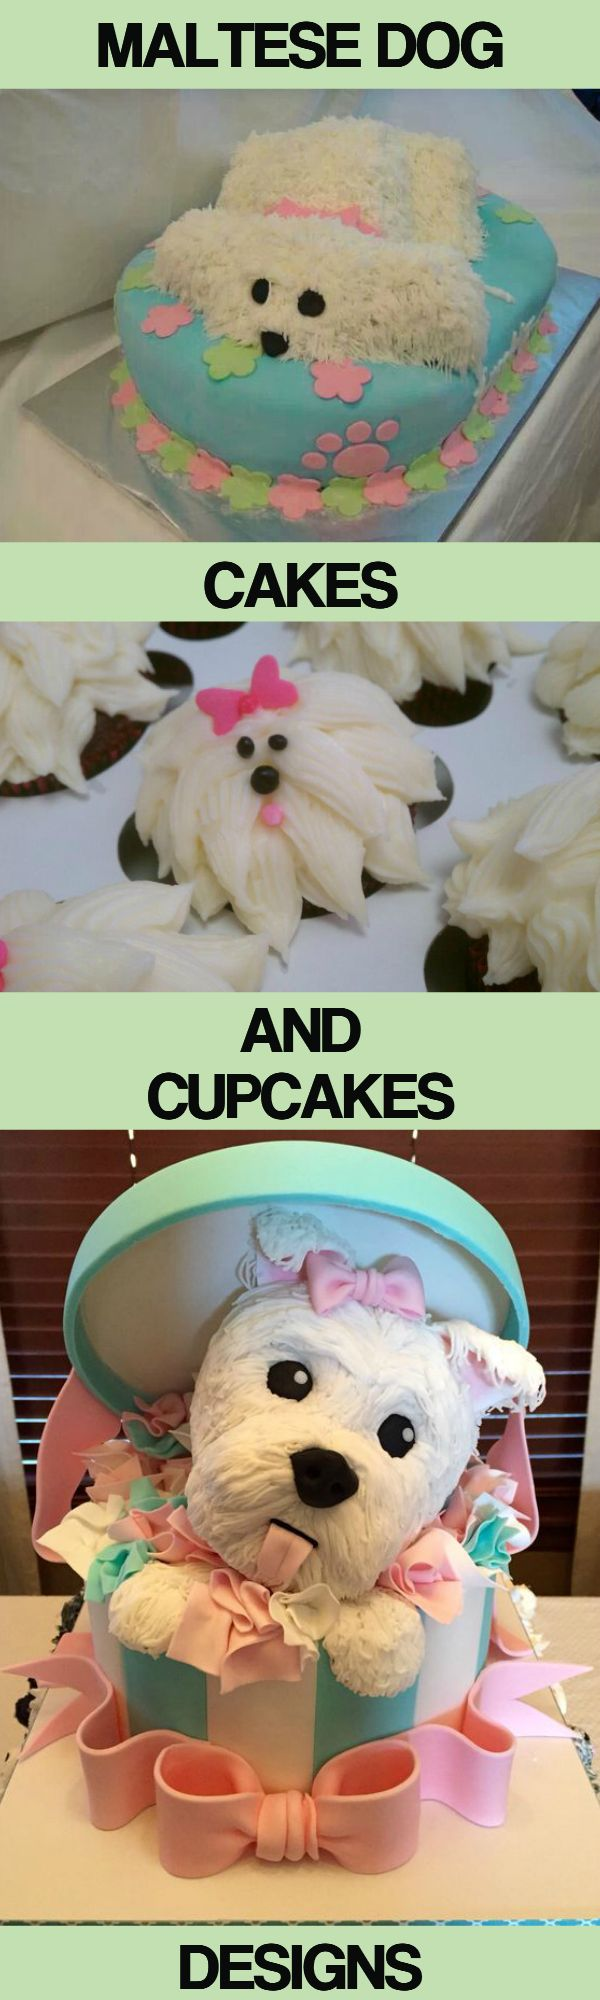 Cute Maltese dog and puppies cakes and cupcakes designs...